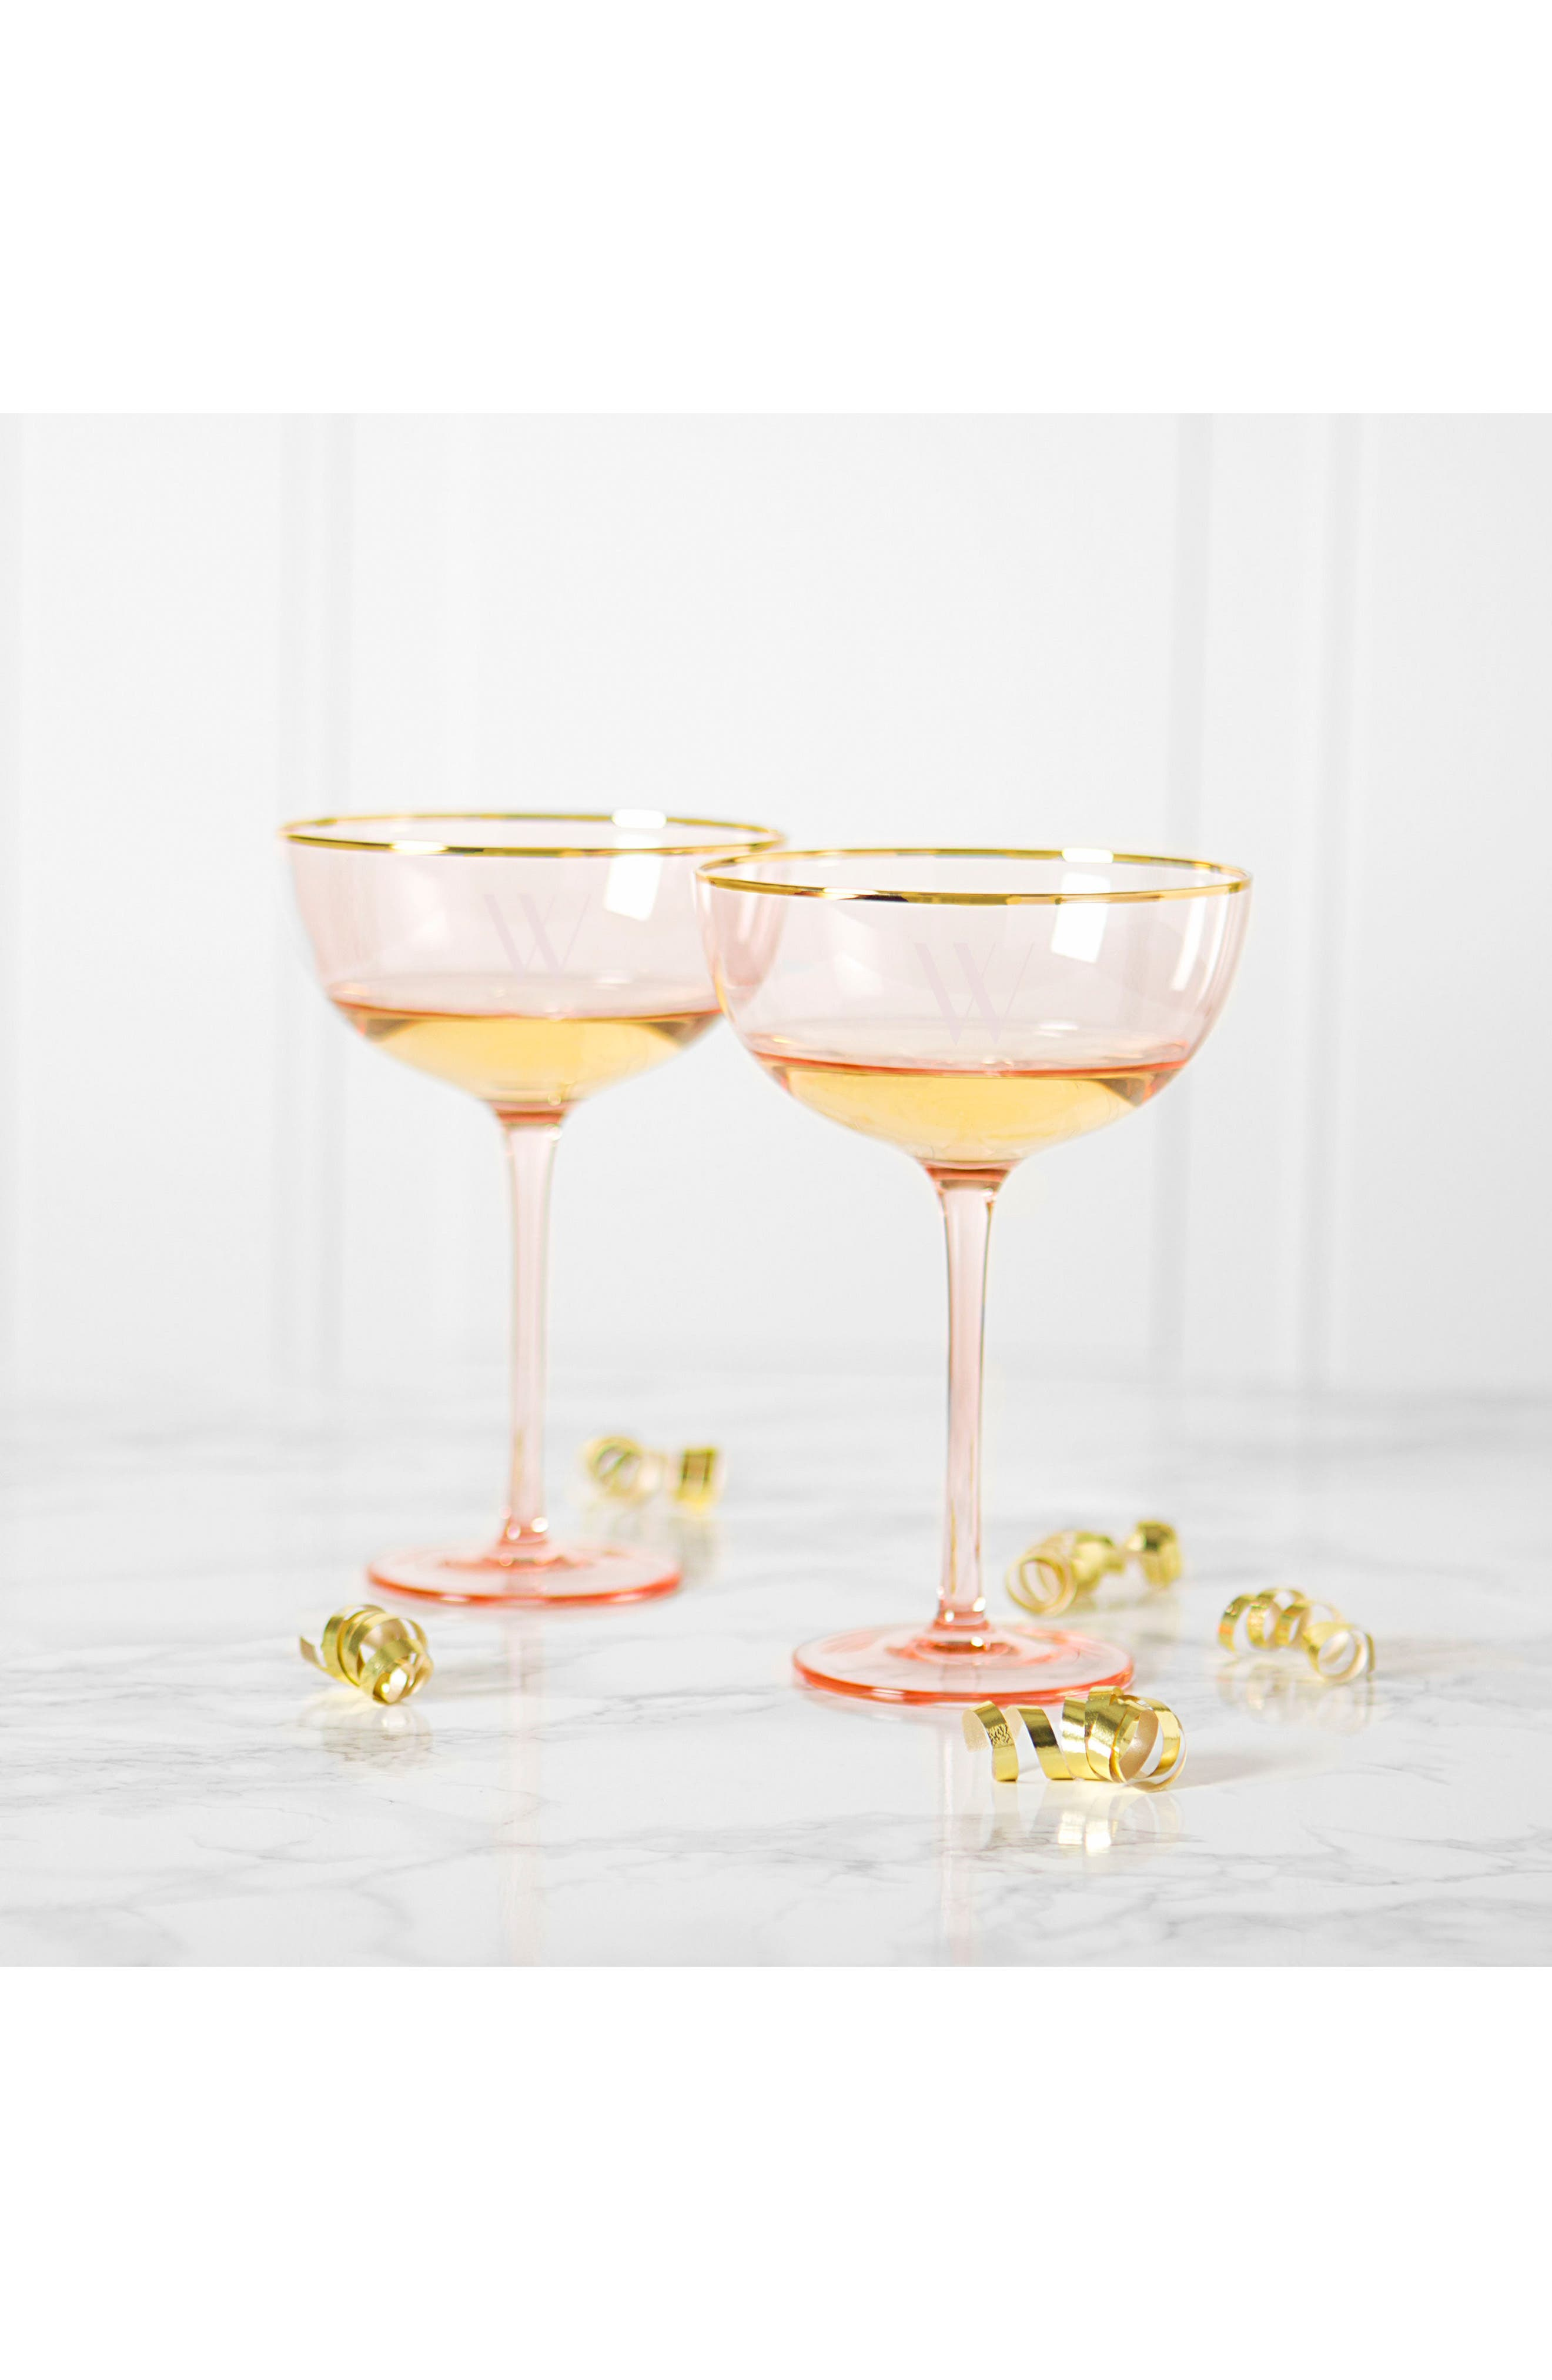 Monogram Set of 2 Champagne Coupes,                             Alternate thumbnail 2, color,                             220